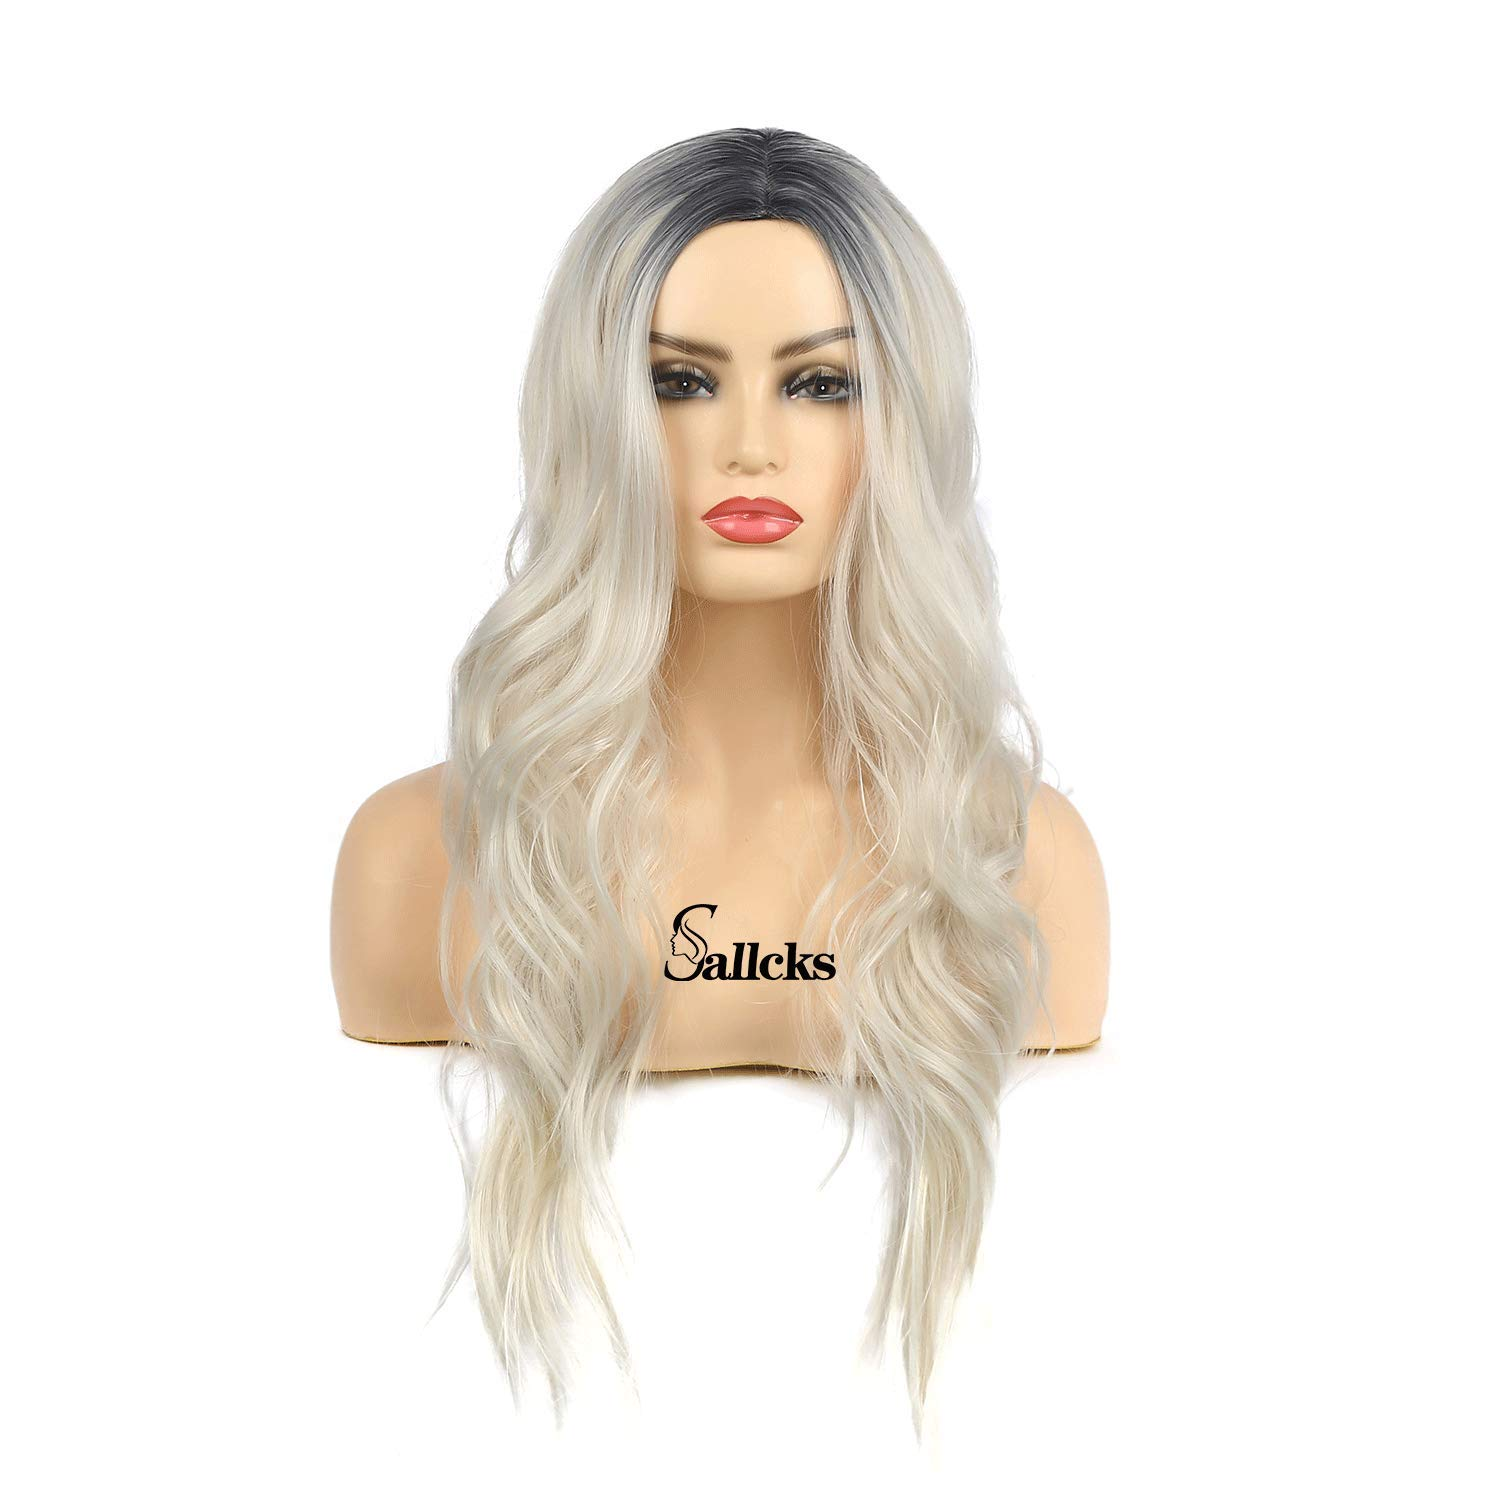 Sallcks Womens Long Curly Wavy Ombre Platinum Blonde Wigs Dyeing Color Synthetic Replacement Wigs Heat Resistant Party Daily Wig with Wig Cap